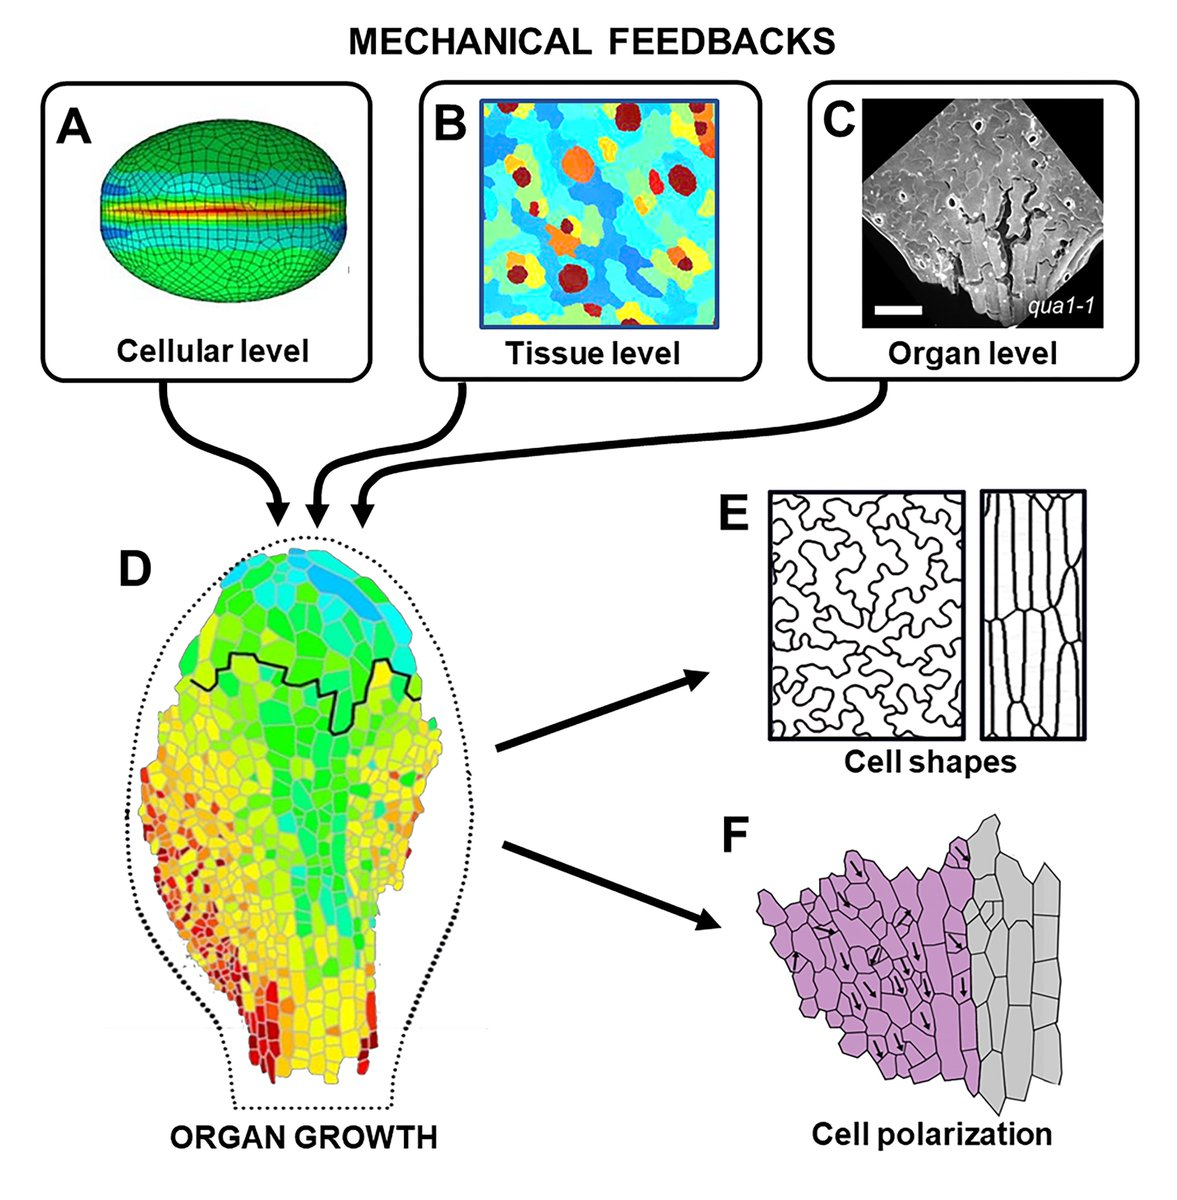 Our review about the #biomechanic of #plant #organogenesis is now online @JXBot: https://academic.oup.com/jxb/advance-article-abstract/doi/10.1093/jxb/erz205/5481774 … @EEchevin @CLeGloanec @RoutierAL